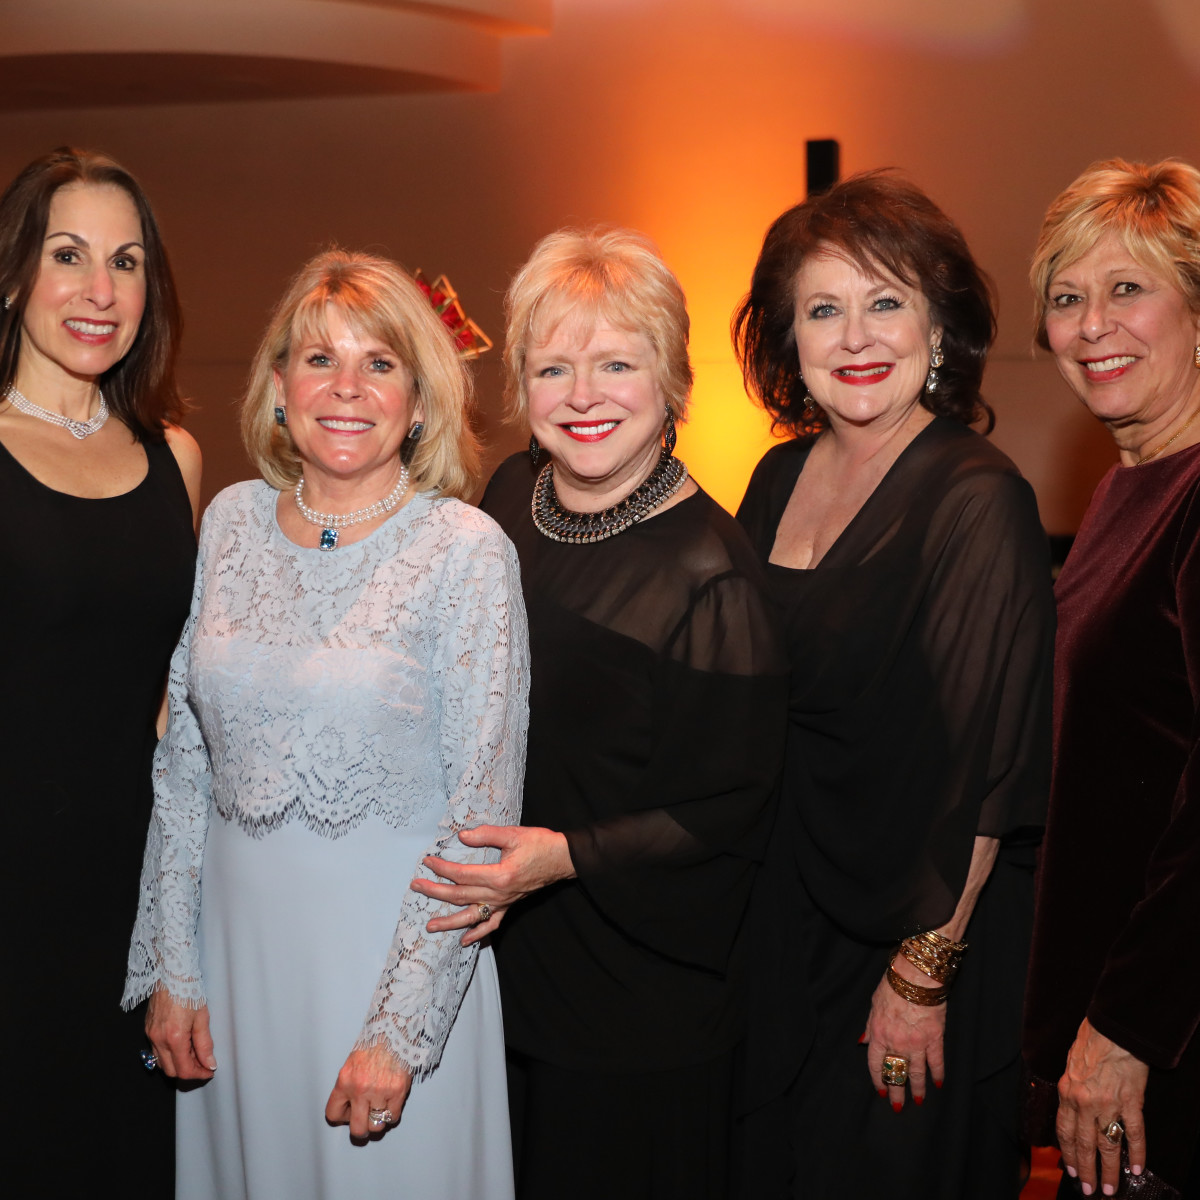 Concert of Arias-Janine Iannarelli, Zane Carruth, Leila Perrin, Charity Yarborough, Maria Lacy